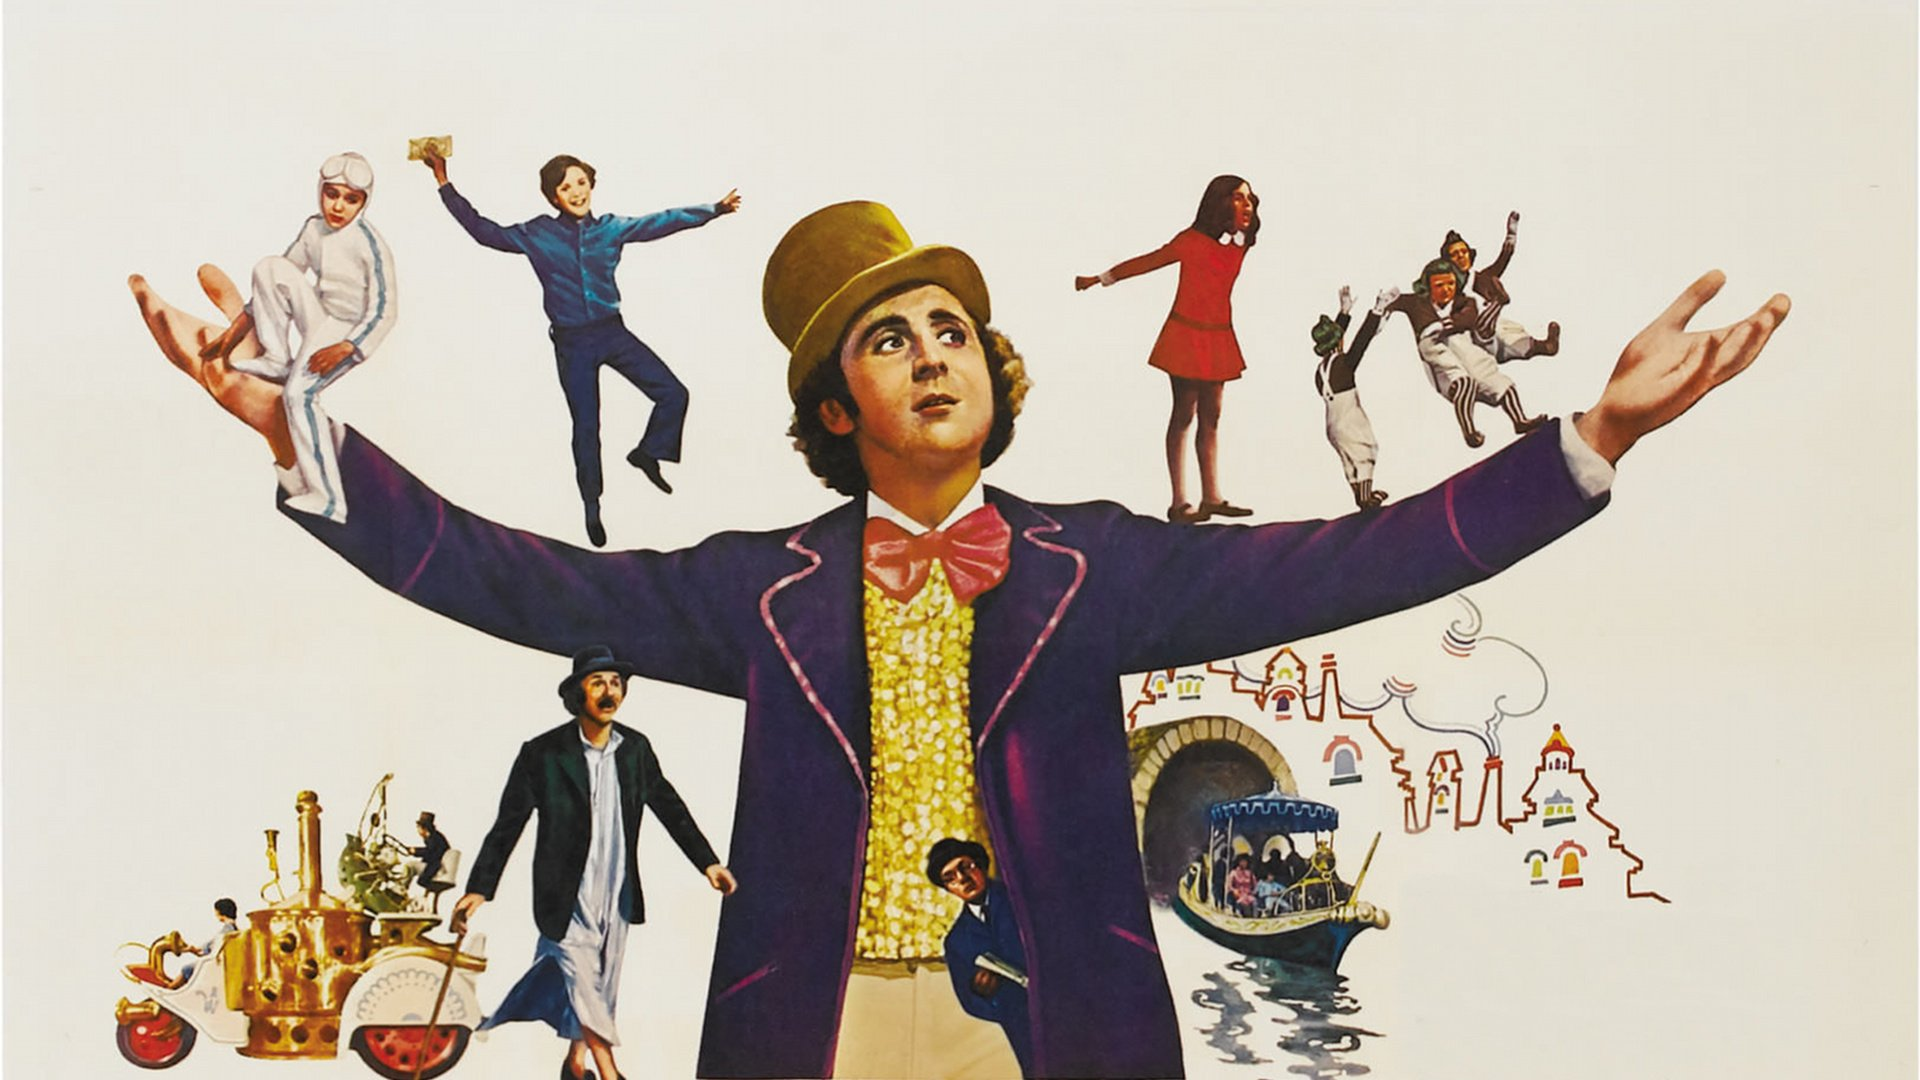 willy wonka chocolate factory charlie adventure family